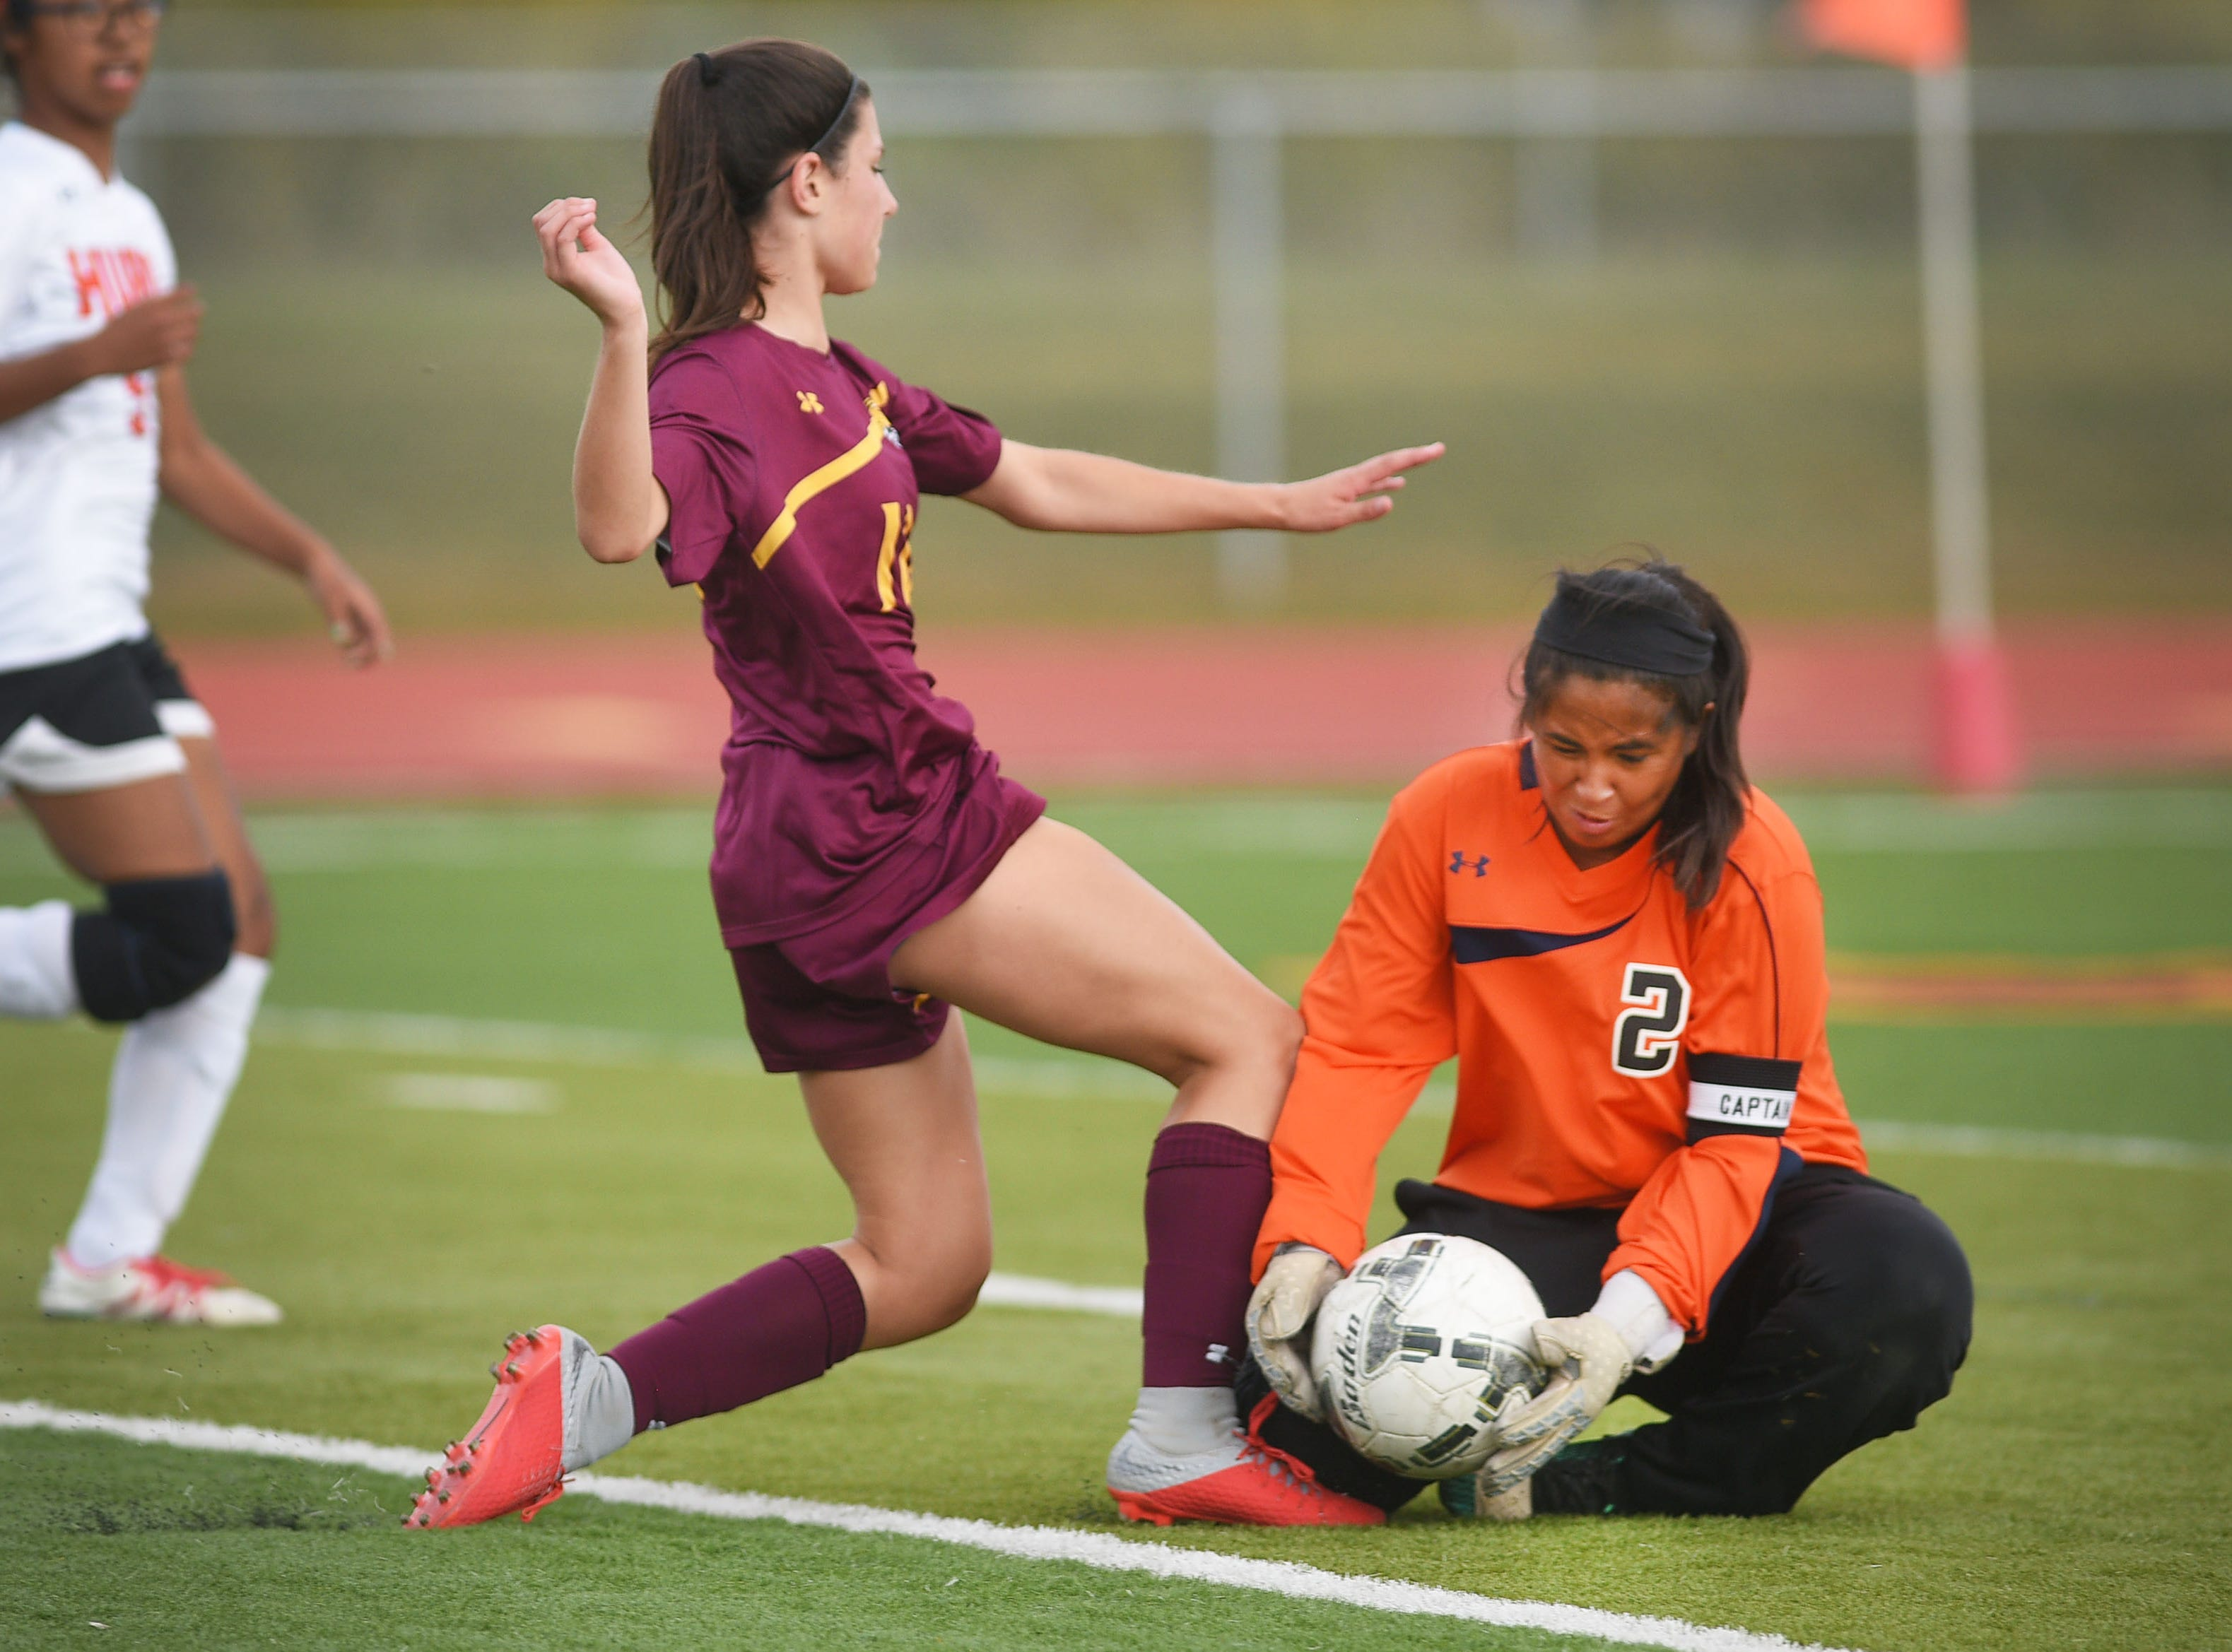 Harrisburg's Brooklyn Schimoeller goes against Huron's 	Fatima Reyes during the game Thursday, Sept. 13, at Harrisburg.